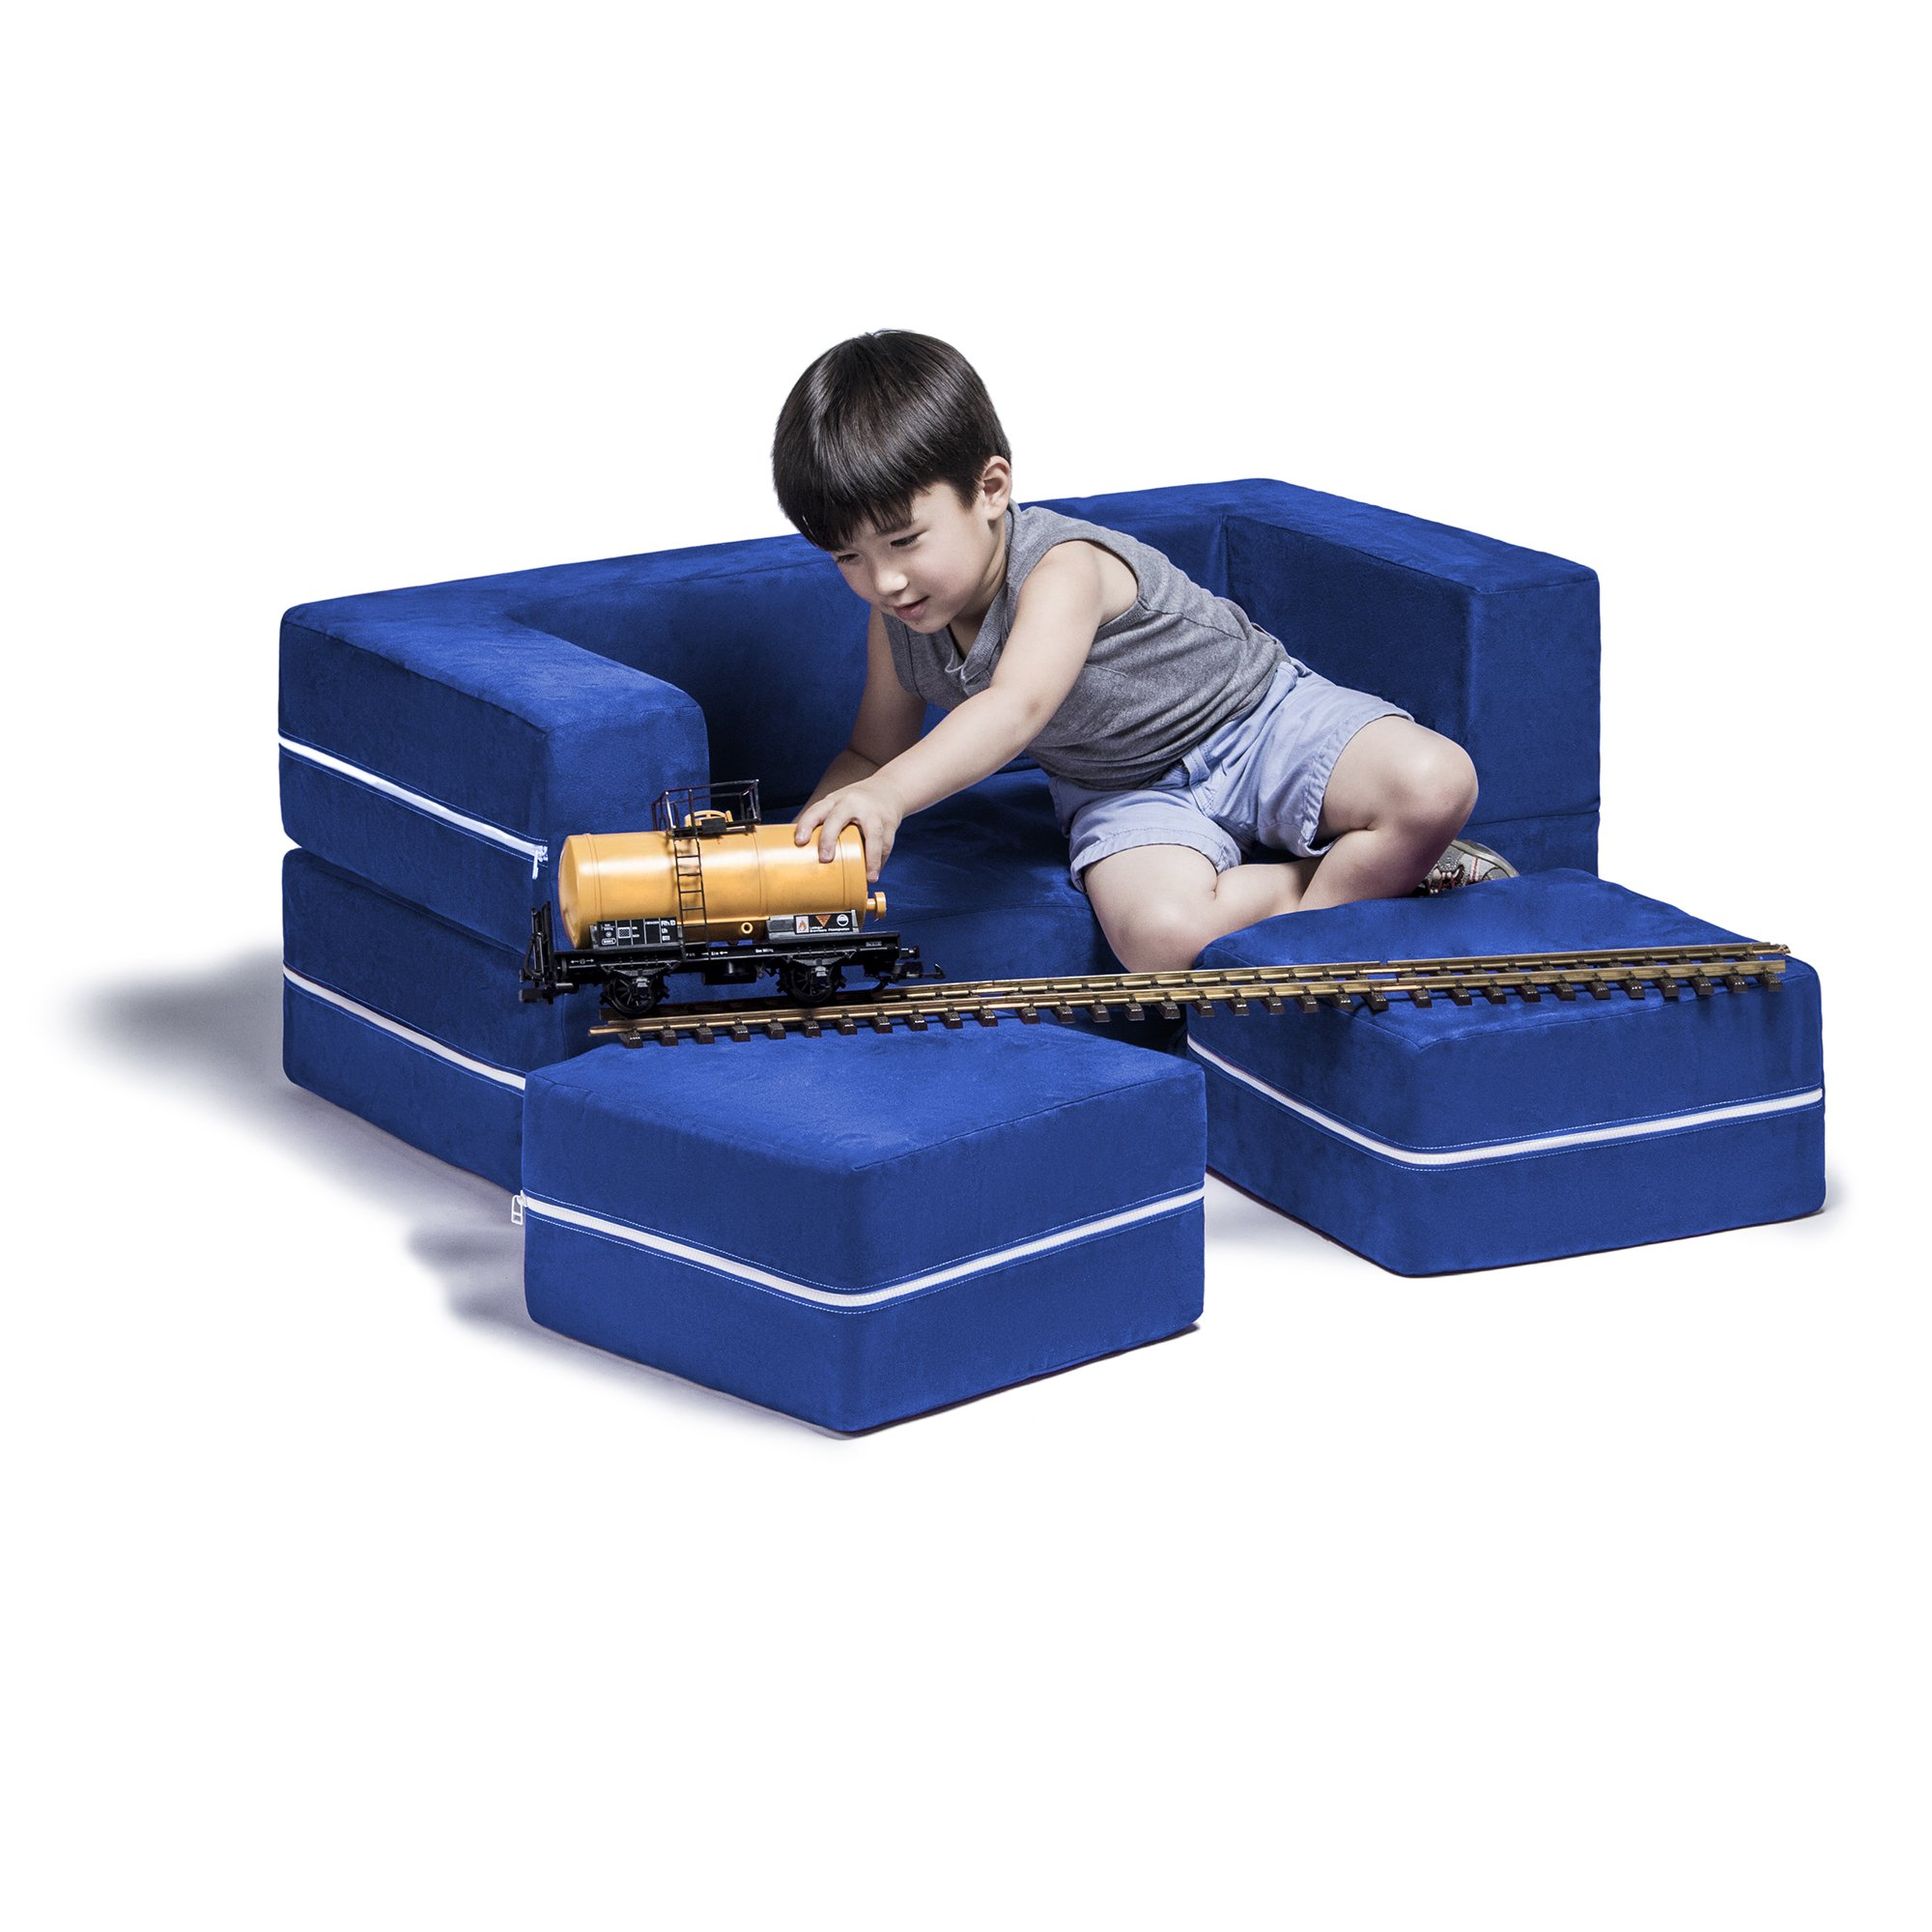 Superb Details About Jaxx Zipline Kids Modular Loveseat Ottomans Fold Out Lounger Blueberry Andrewgaddart Wooden Chair Designs For Living Room Andrewgaddartcom